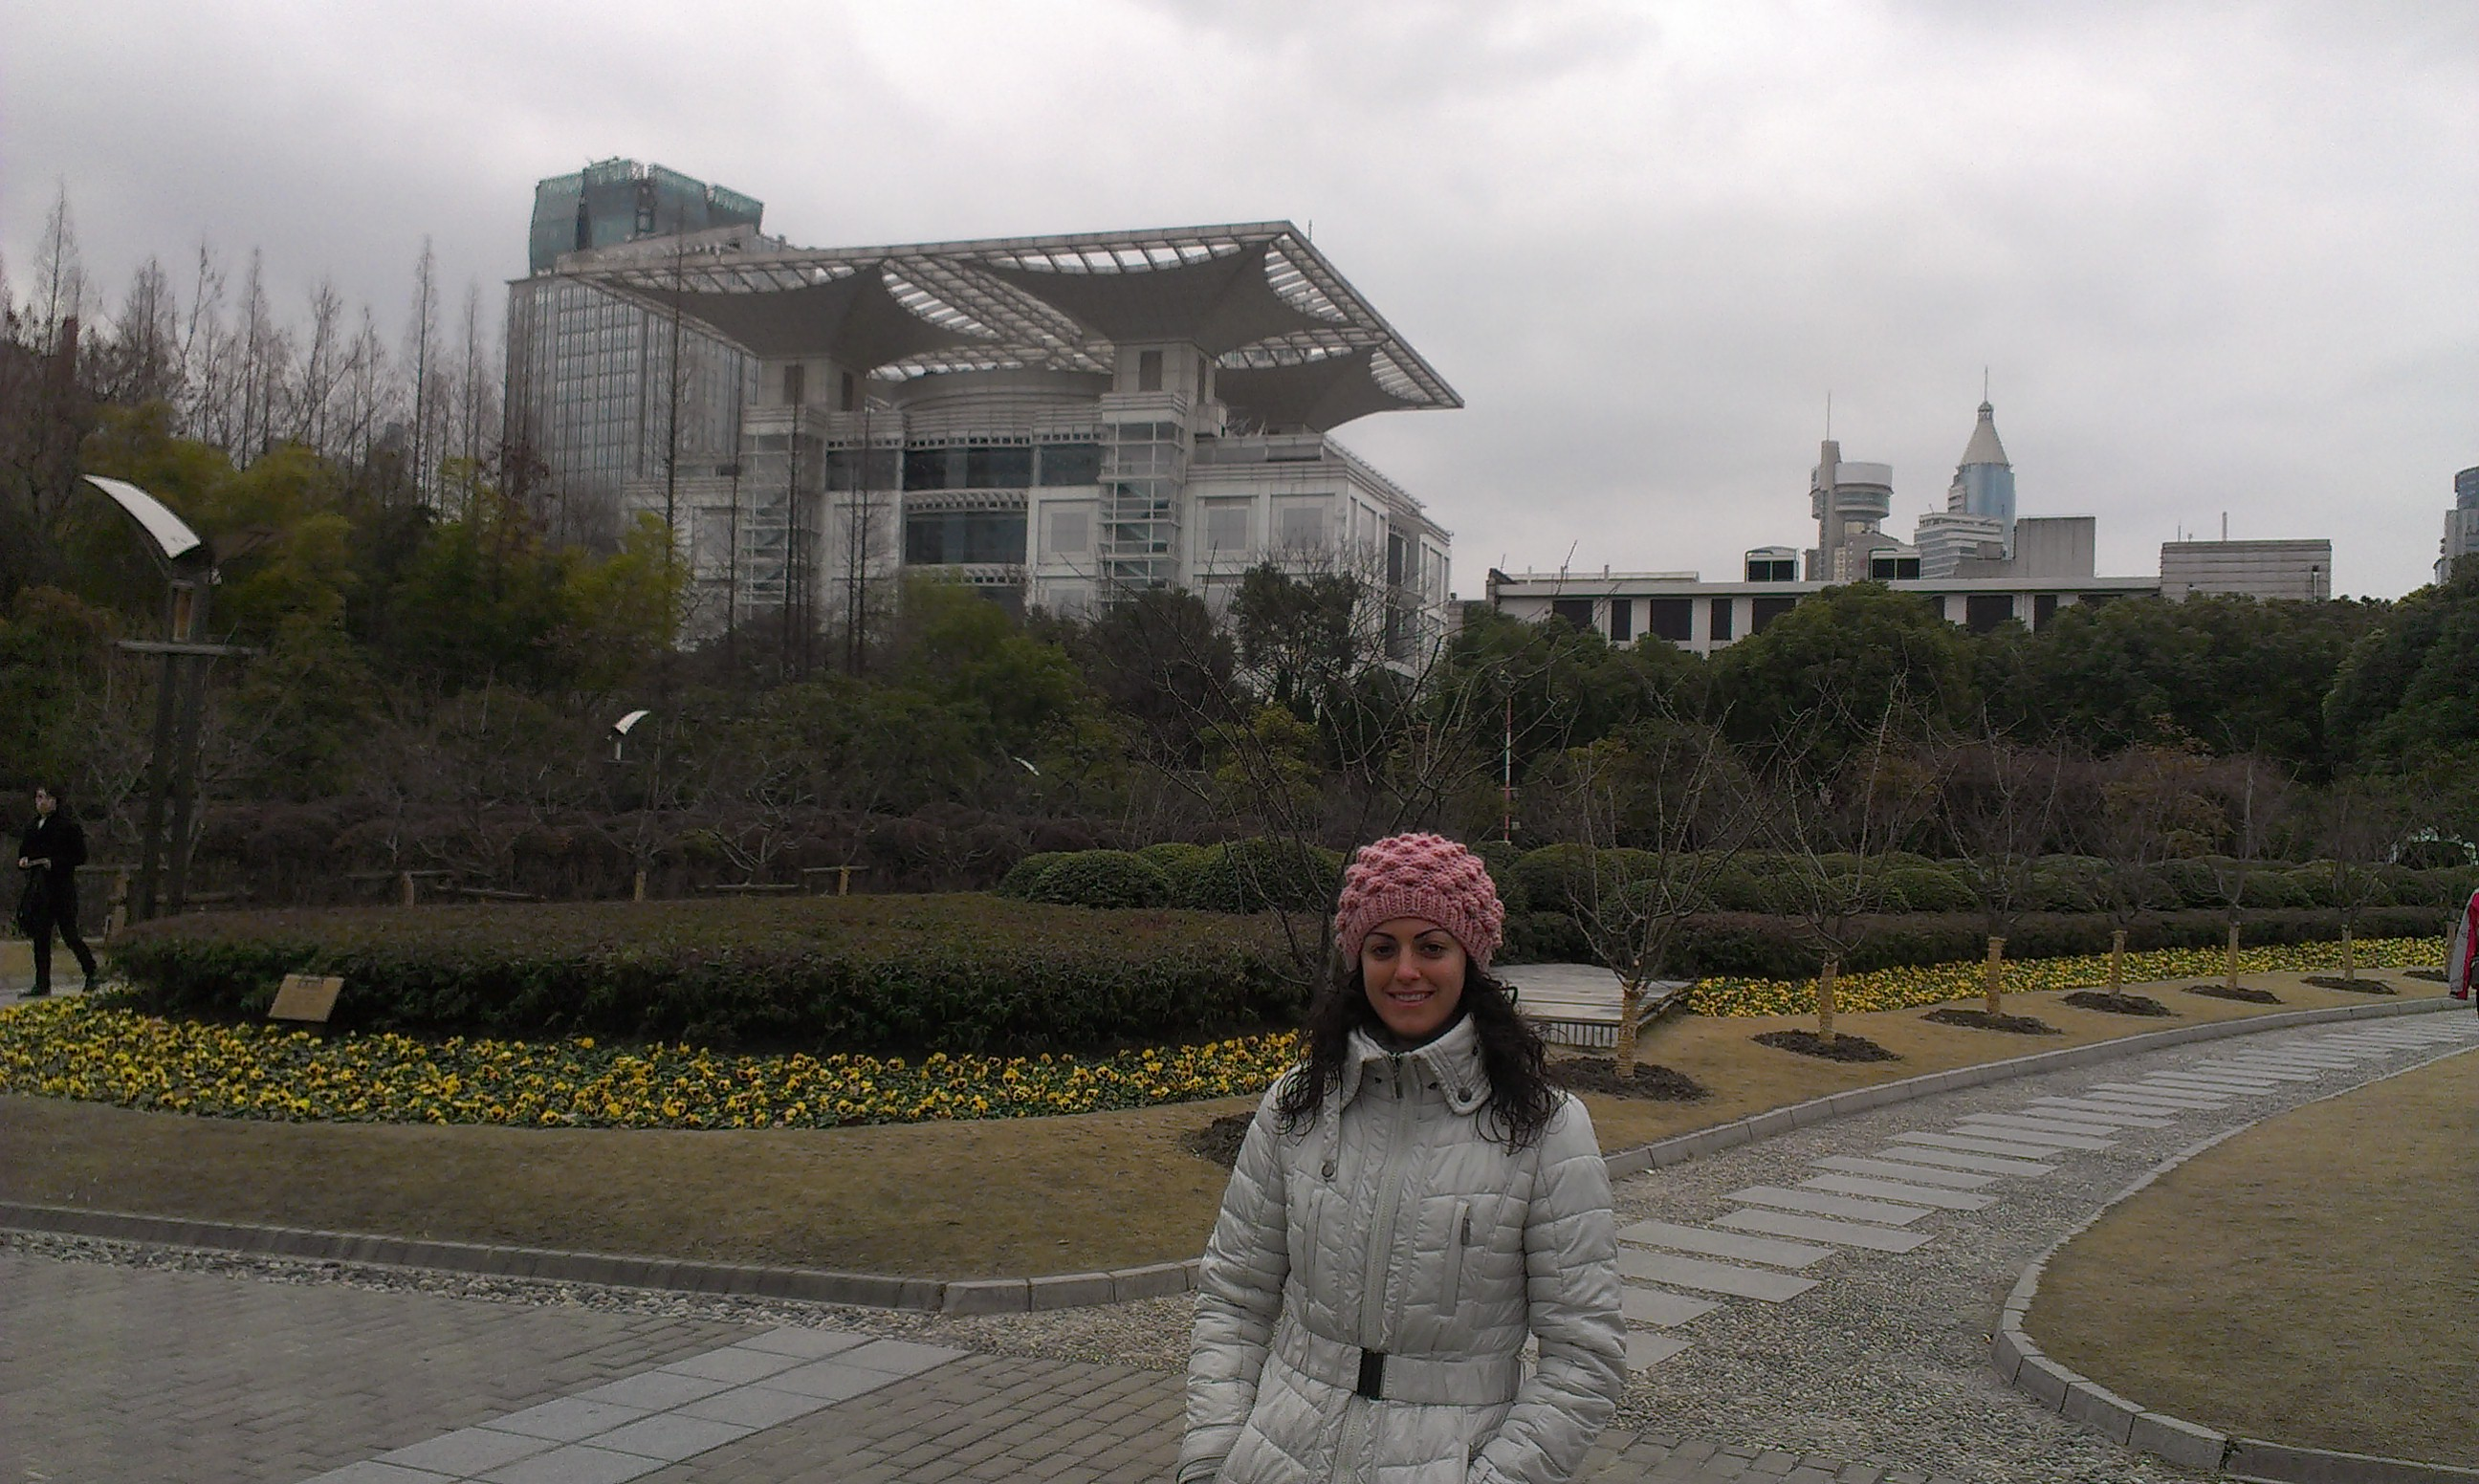 People's Square 1